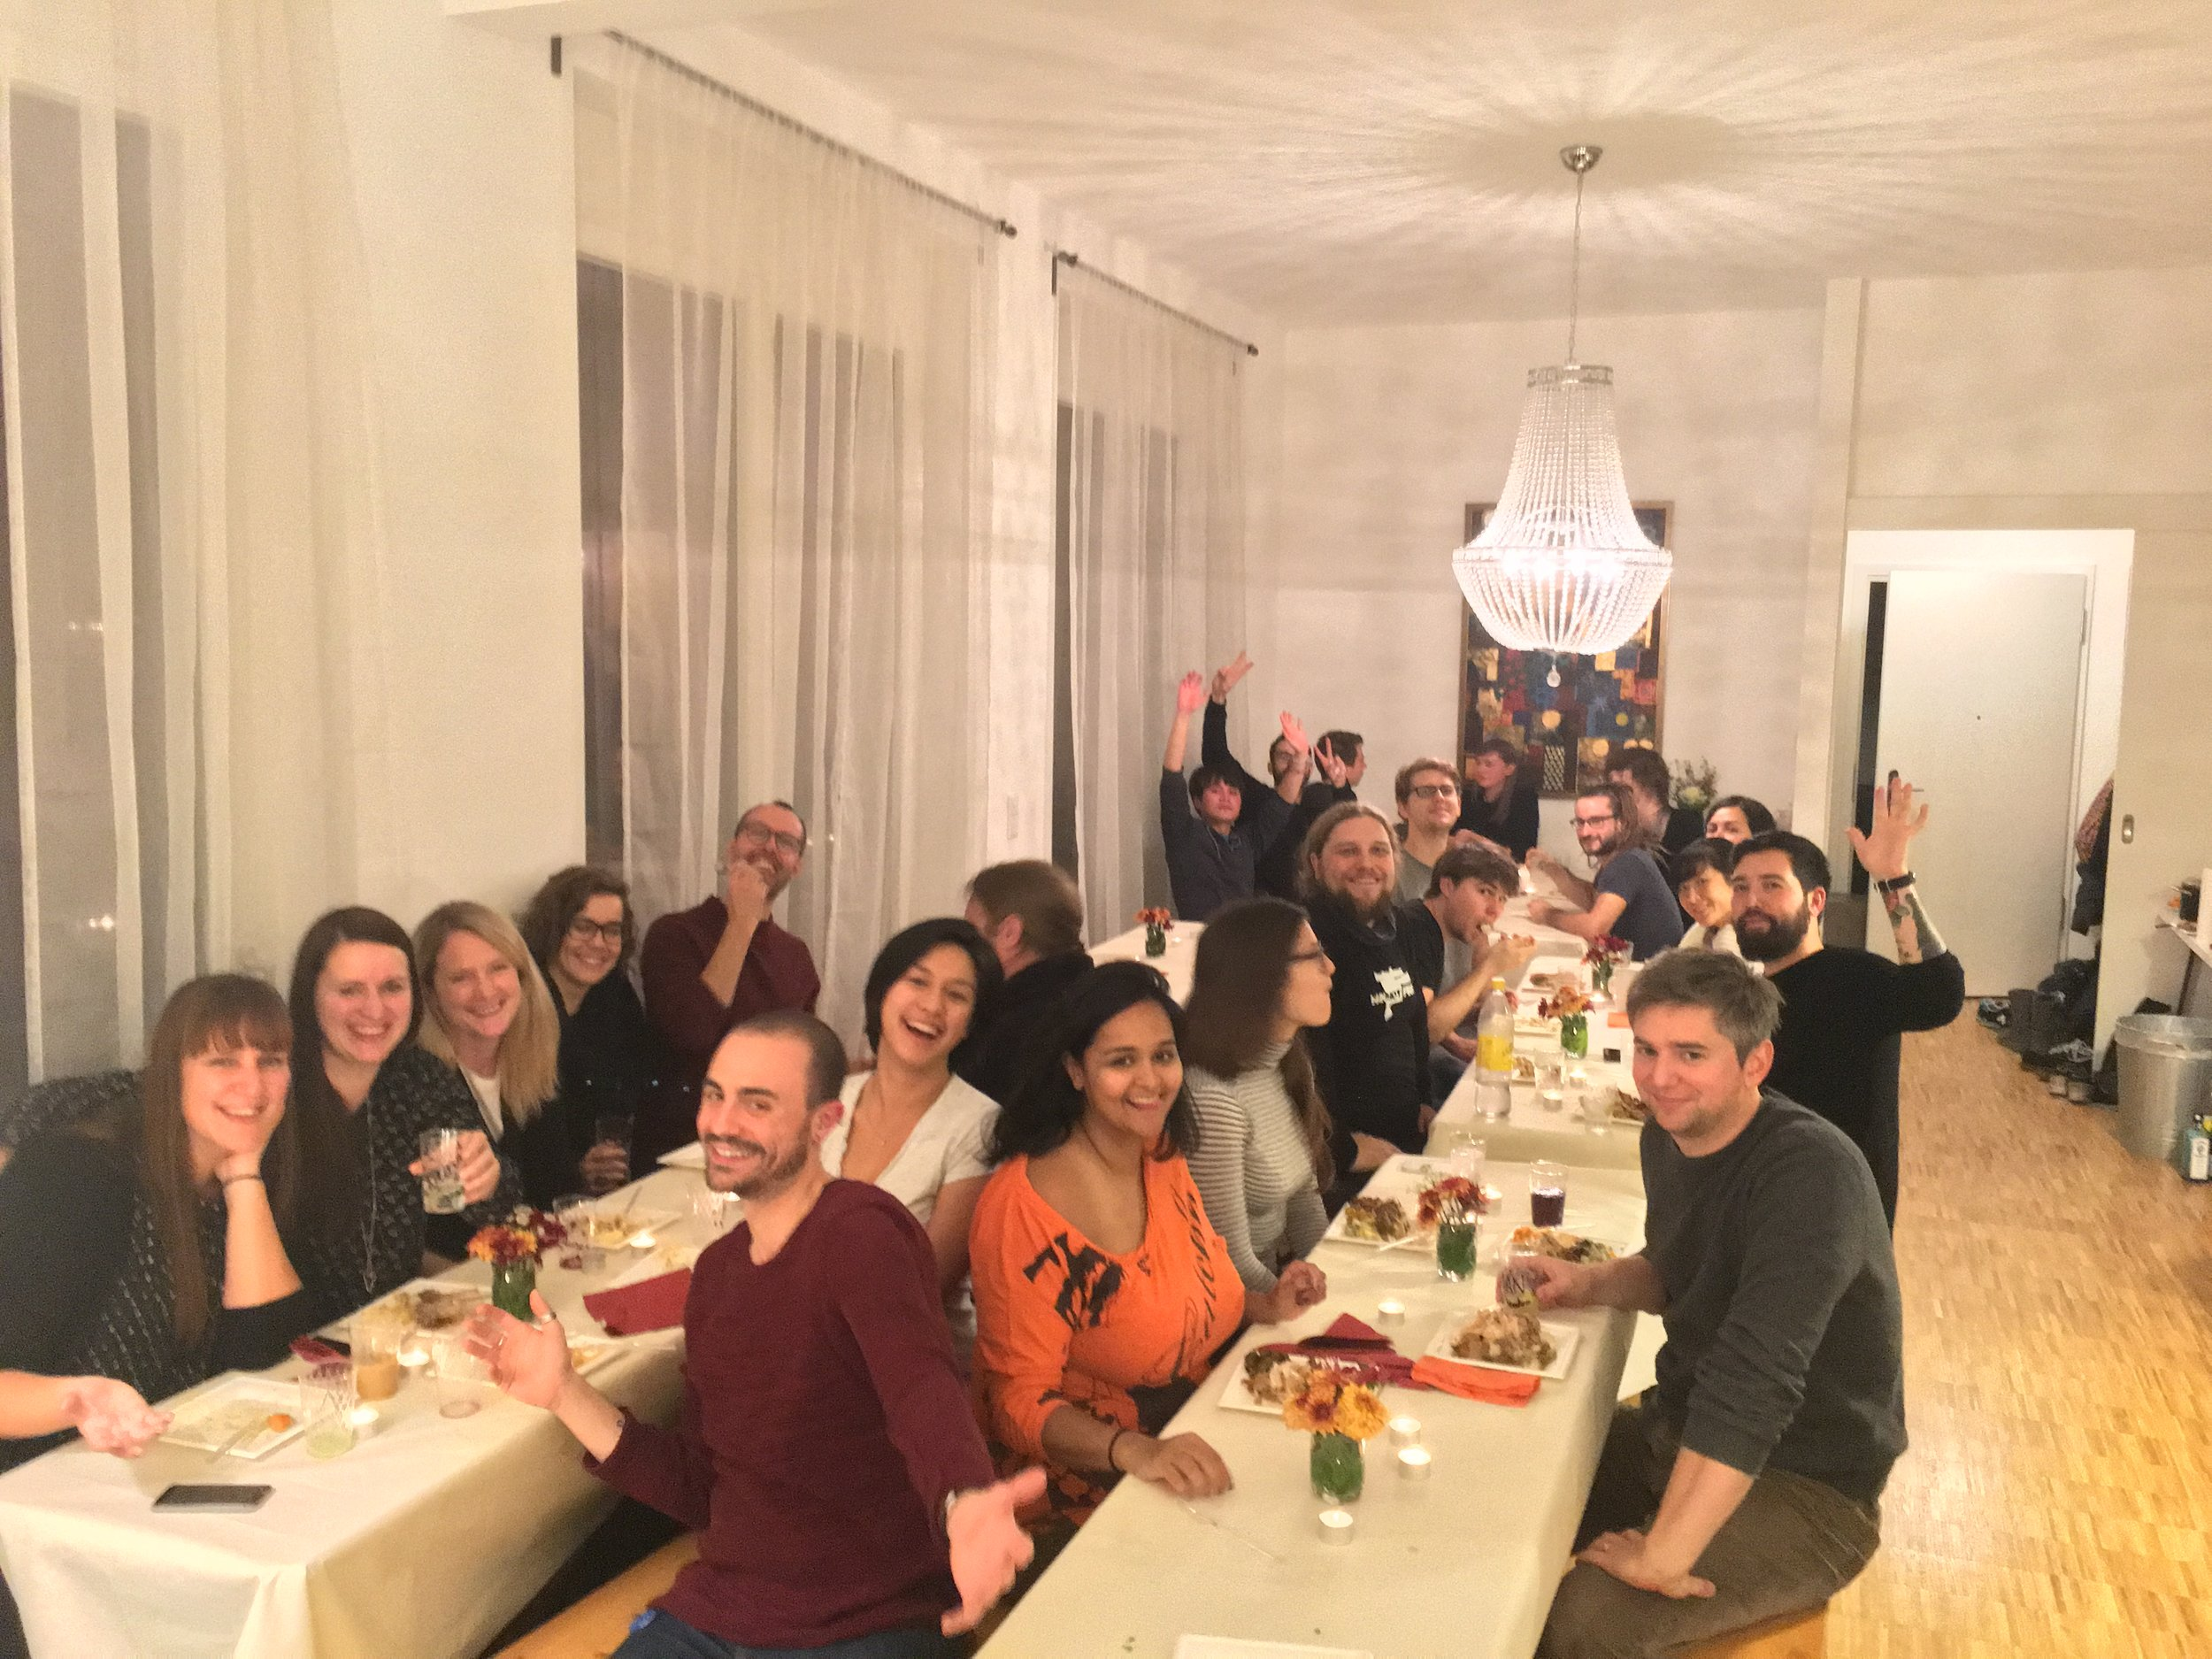 My work is truly all about people. I joyfully hosted the office in my flat for Thanksgiving dinner.